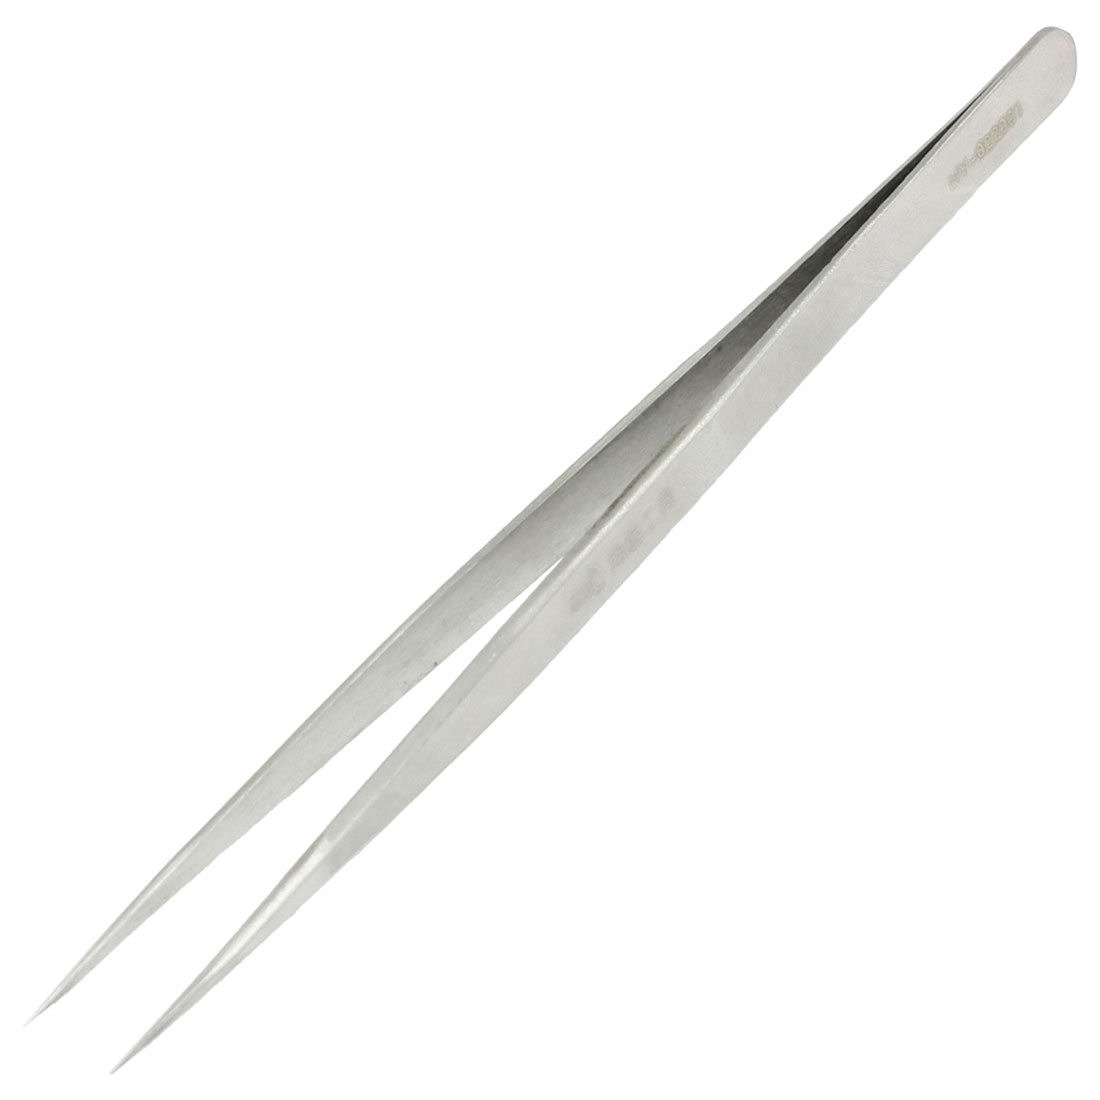 "5.4"" Long Silver Tone Stainless Steel Extra Fine Pointed Tweezers"